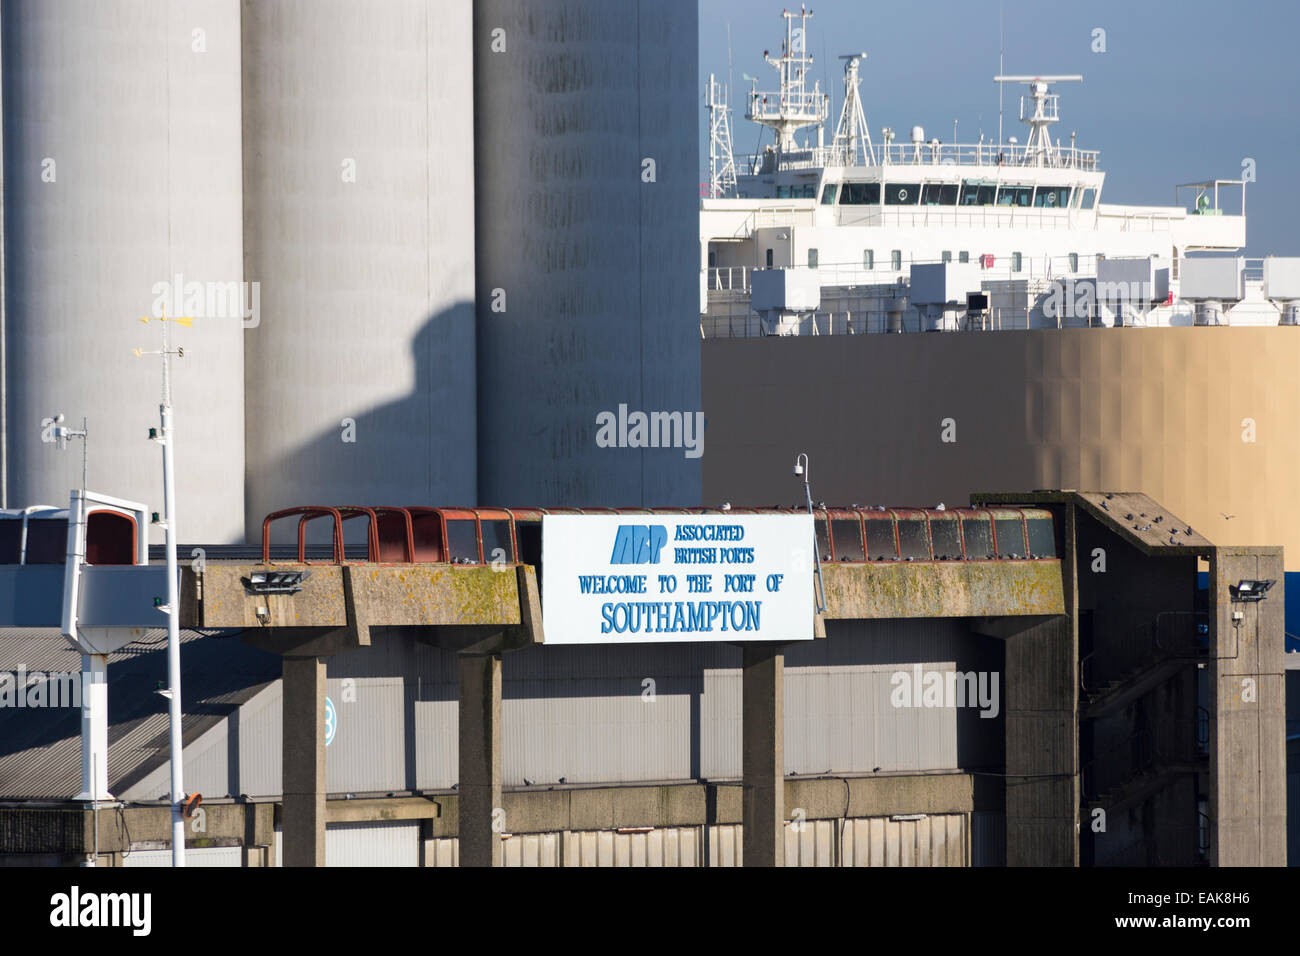 Sign for ABP, Associated British Ports, and the Port of Southampton, at Southampton Docks, Hampshire, UK - Stock Image